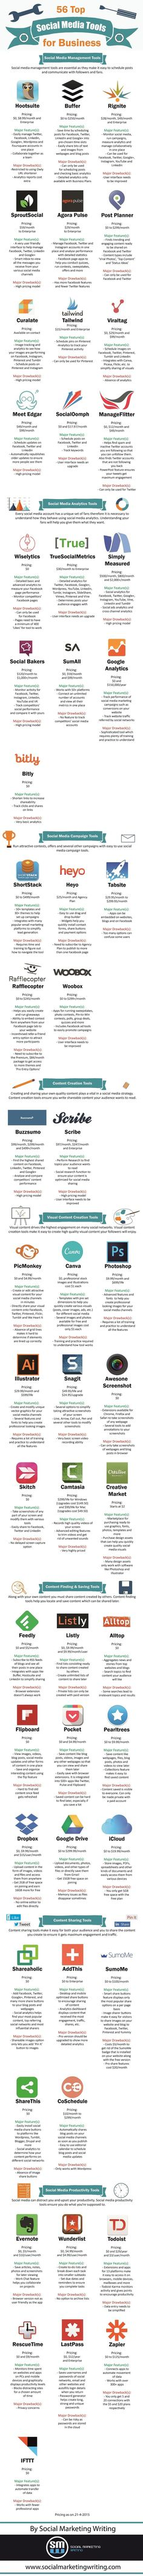 56 Top #SocialMedia Marketing Tools for Business - #Infographic